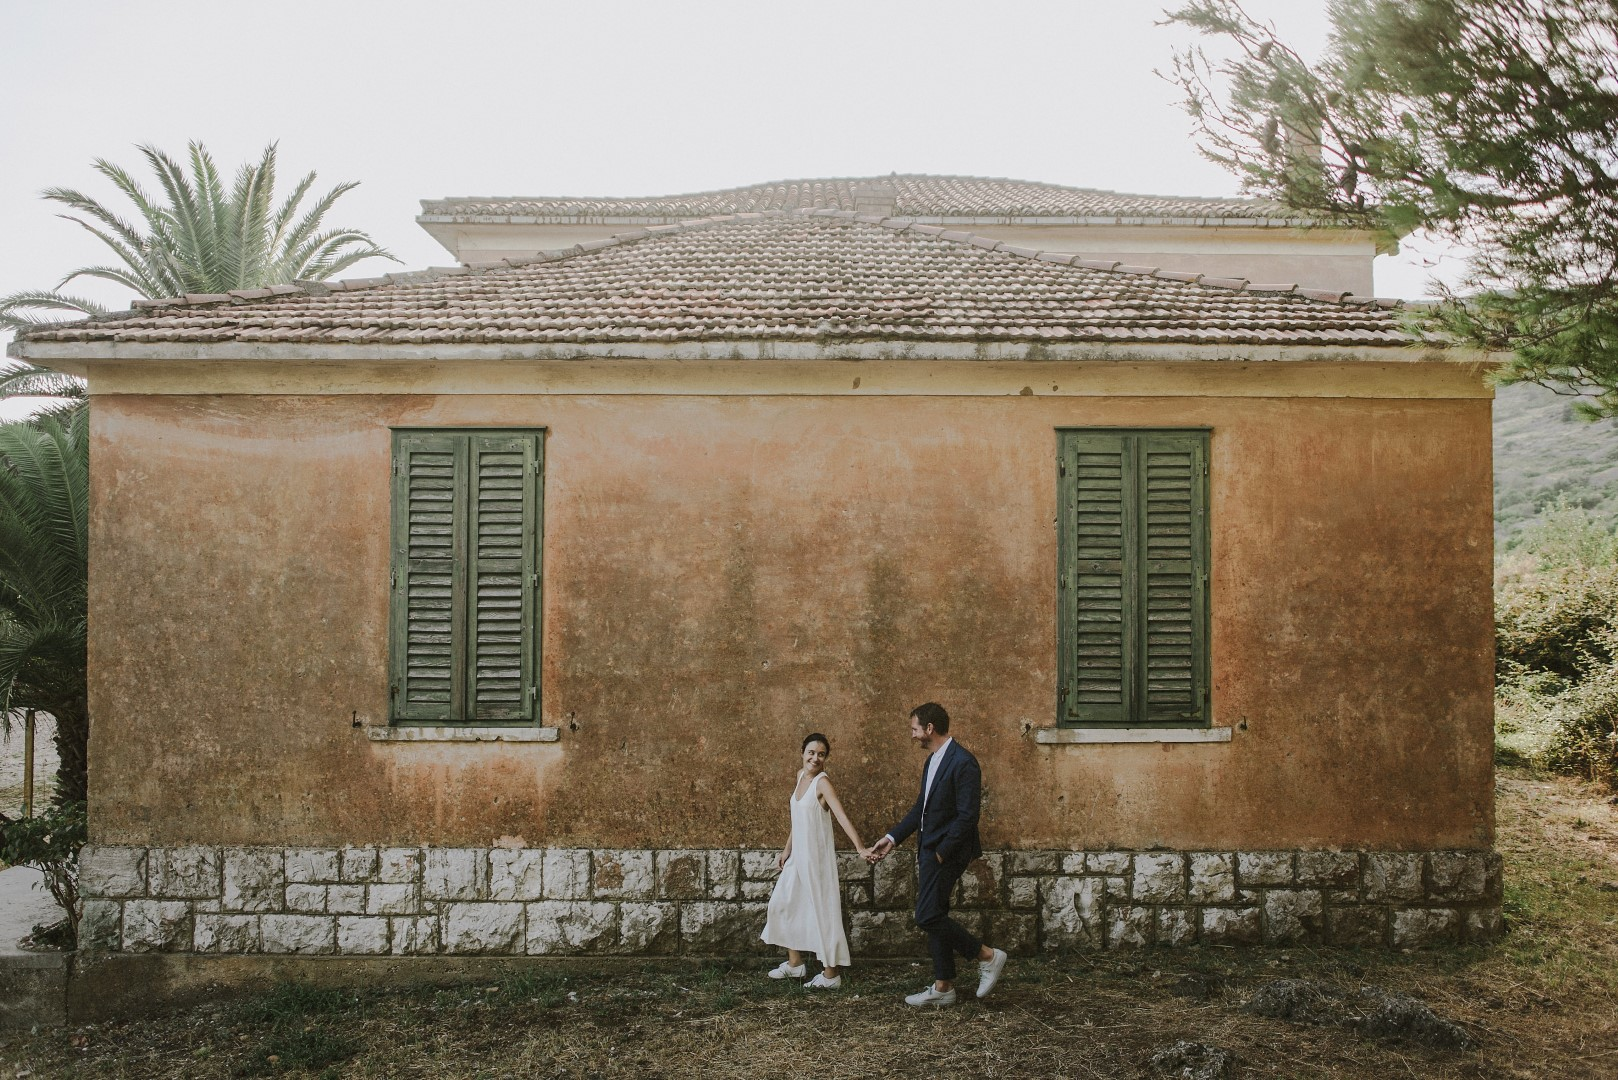 A photo of the happy couple from their photosession with Marko Marinkovic. Behind them is a small house with lovely green windows. They are holding hands and smiling at each other.